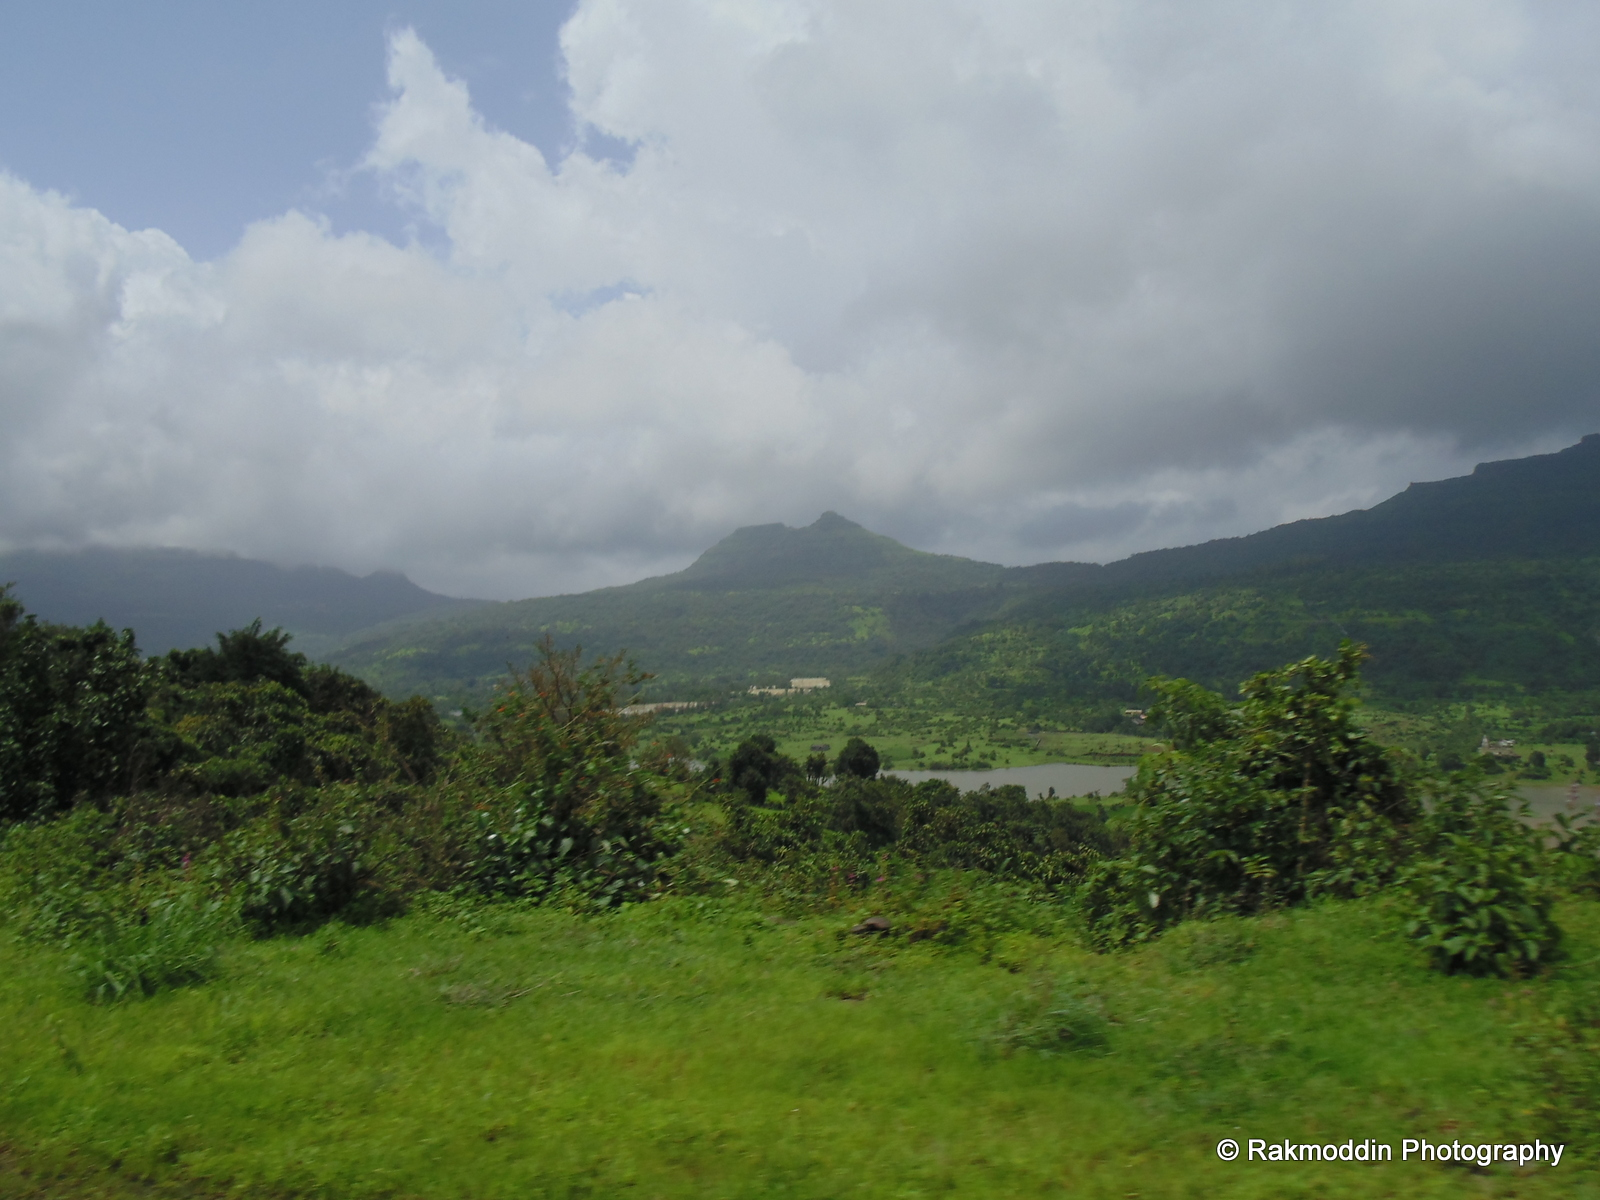 Scenic views on the way to aamby valley via tikona fort road